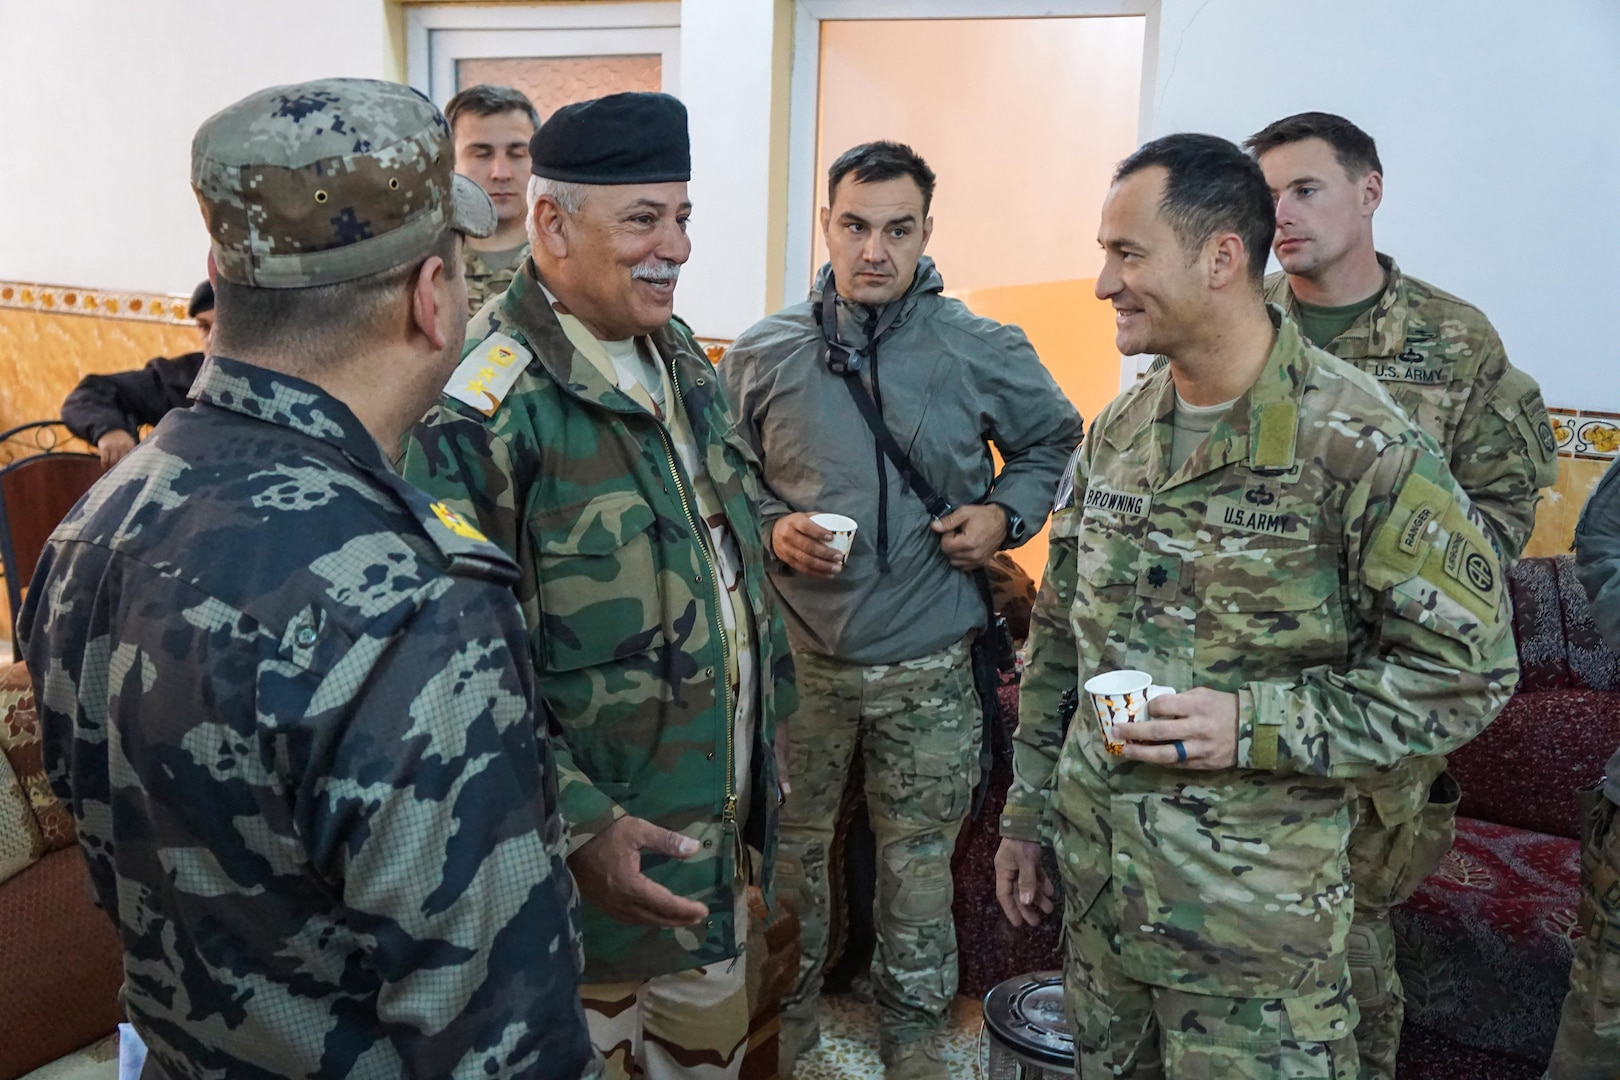 U.S. Army Lt. Col. Jim Browning (right) speaks to a 9th Iraqi Army Division brigade commander before a review of the division's concept of operations for the upcoming battle to liberate West Mosul, Feb. 17, 2017.  Browning is the battalion commander of 2nd Battalion, 508th Parachute Infantry Regiment, 2nd Brigade Combat Team, 82nd Airborne Division and the Coalition advisor for the 9th IAD.   2nd BCT, 82nd Abn. Div. is deployed in support of Operation Inherent Resolve, to enable their Iraqi security forces partners through the advise and assist mission, contributing planning, intelligence collection and analysis, force protection, and precision fires to achieve the military defeat of ISIS.  Combined Joint Task Force-Operation Inherent Resolve is the global Coalition to defeat ISIS in Iraq and Syria. (U.S. Department of Defense photo by U.S. Marine Corps Capt. Timothy Irish)